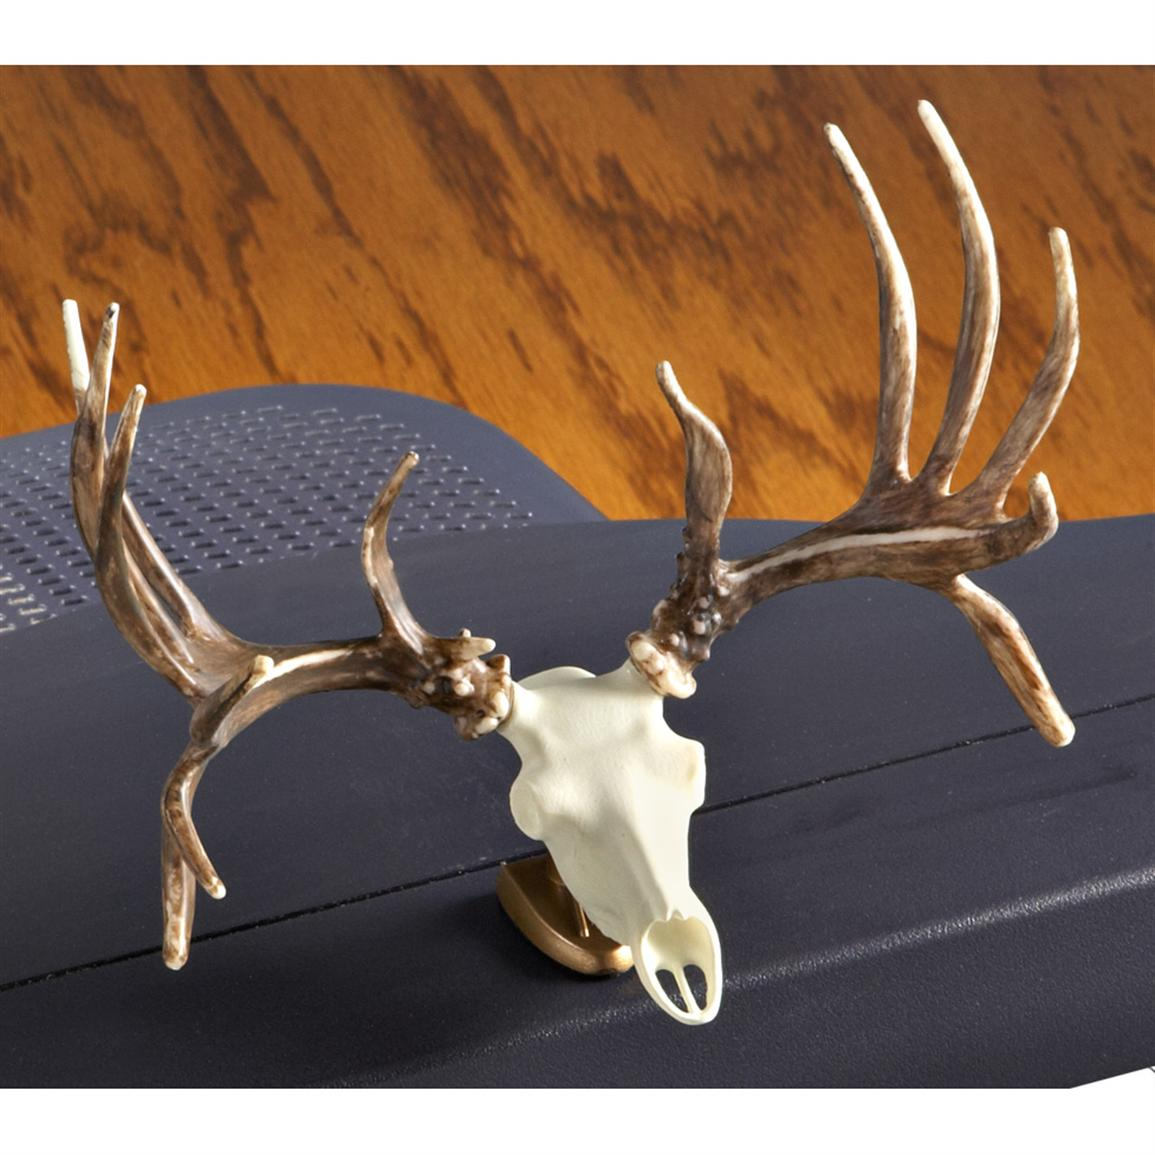 Raxx Dashboard Deer Skull, Whitetail